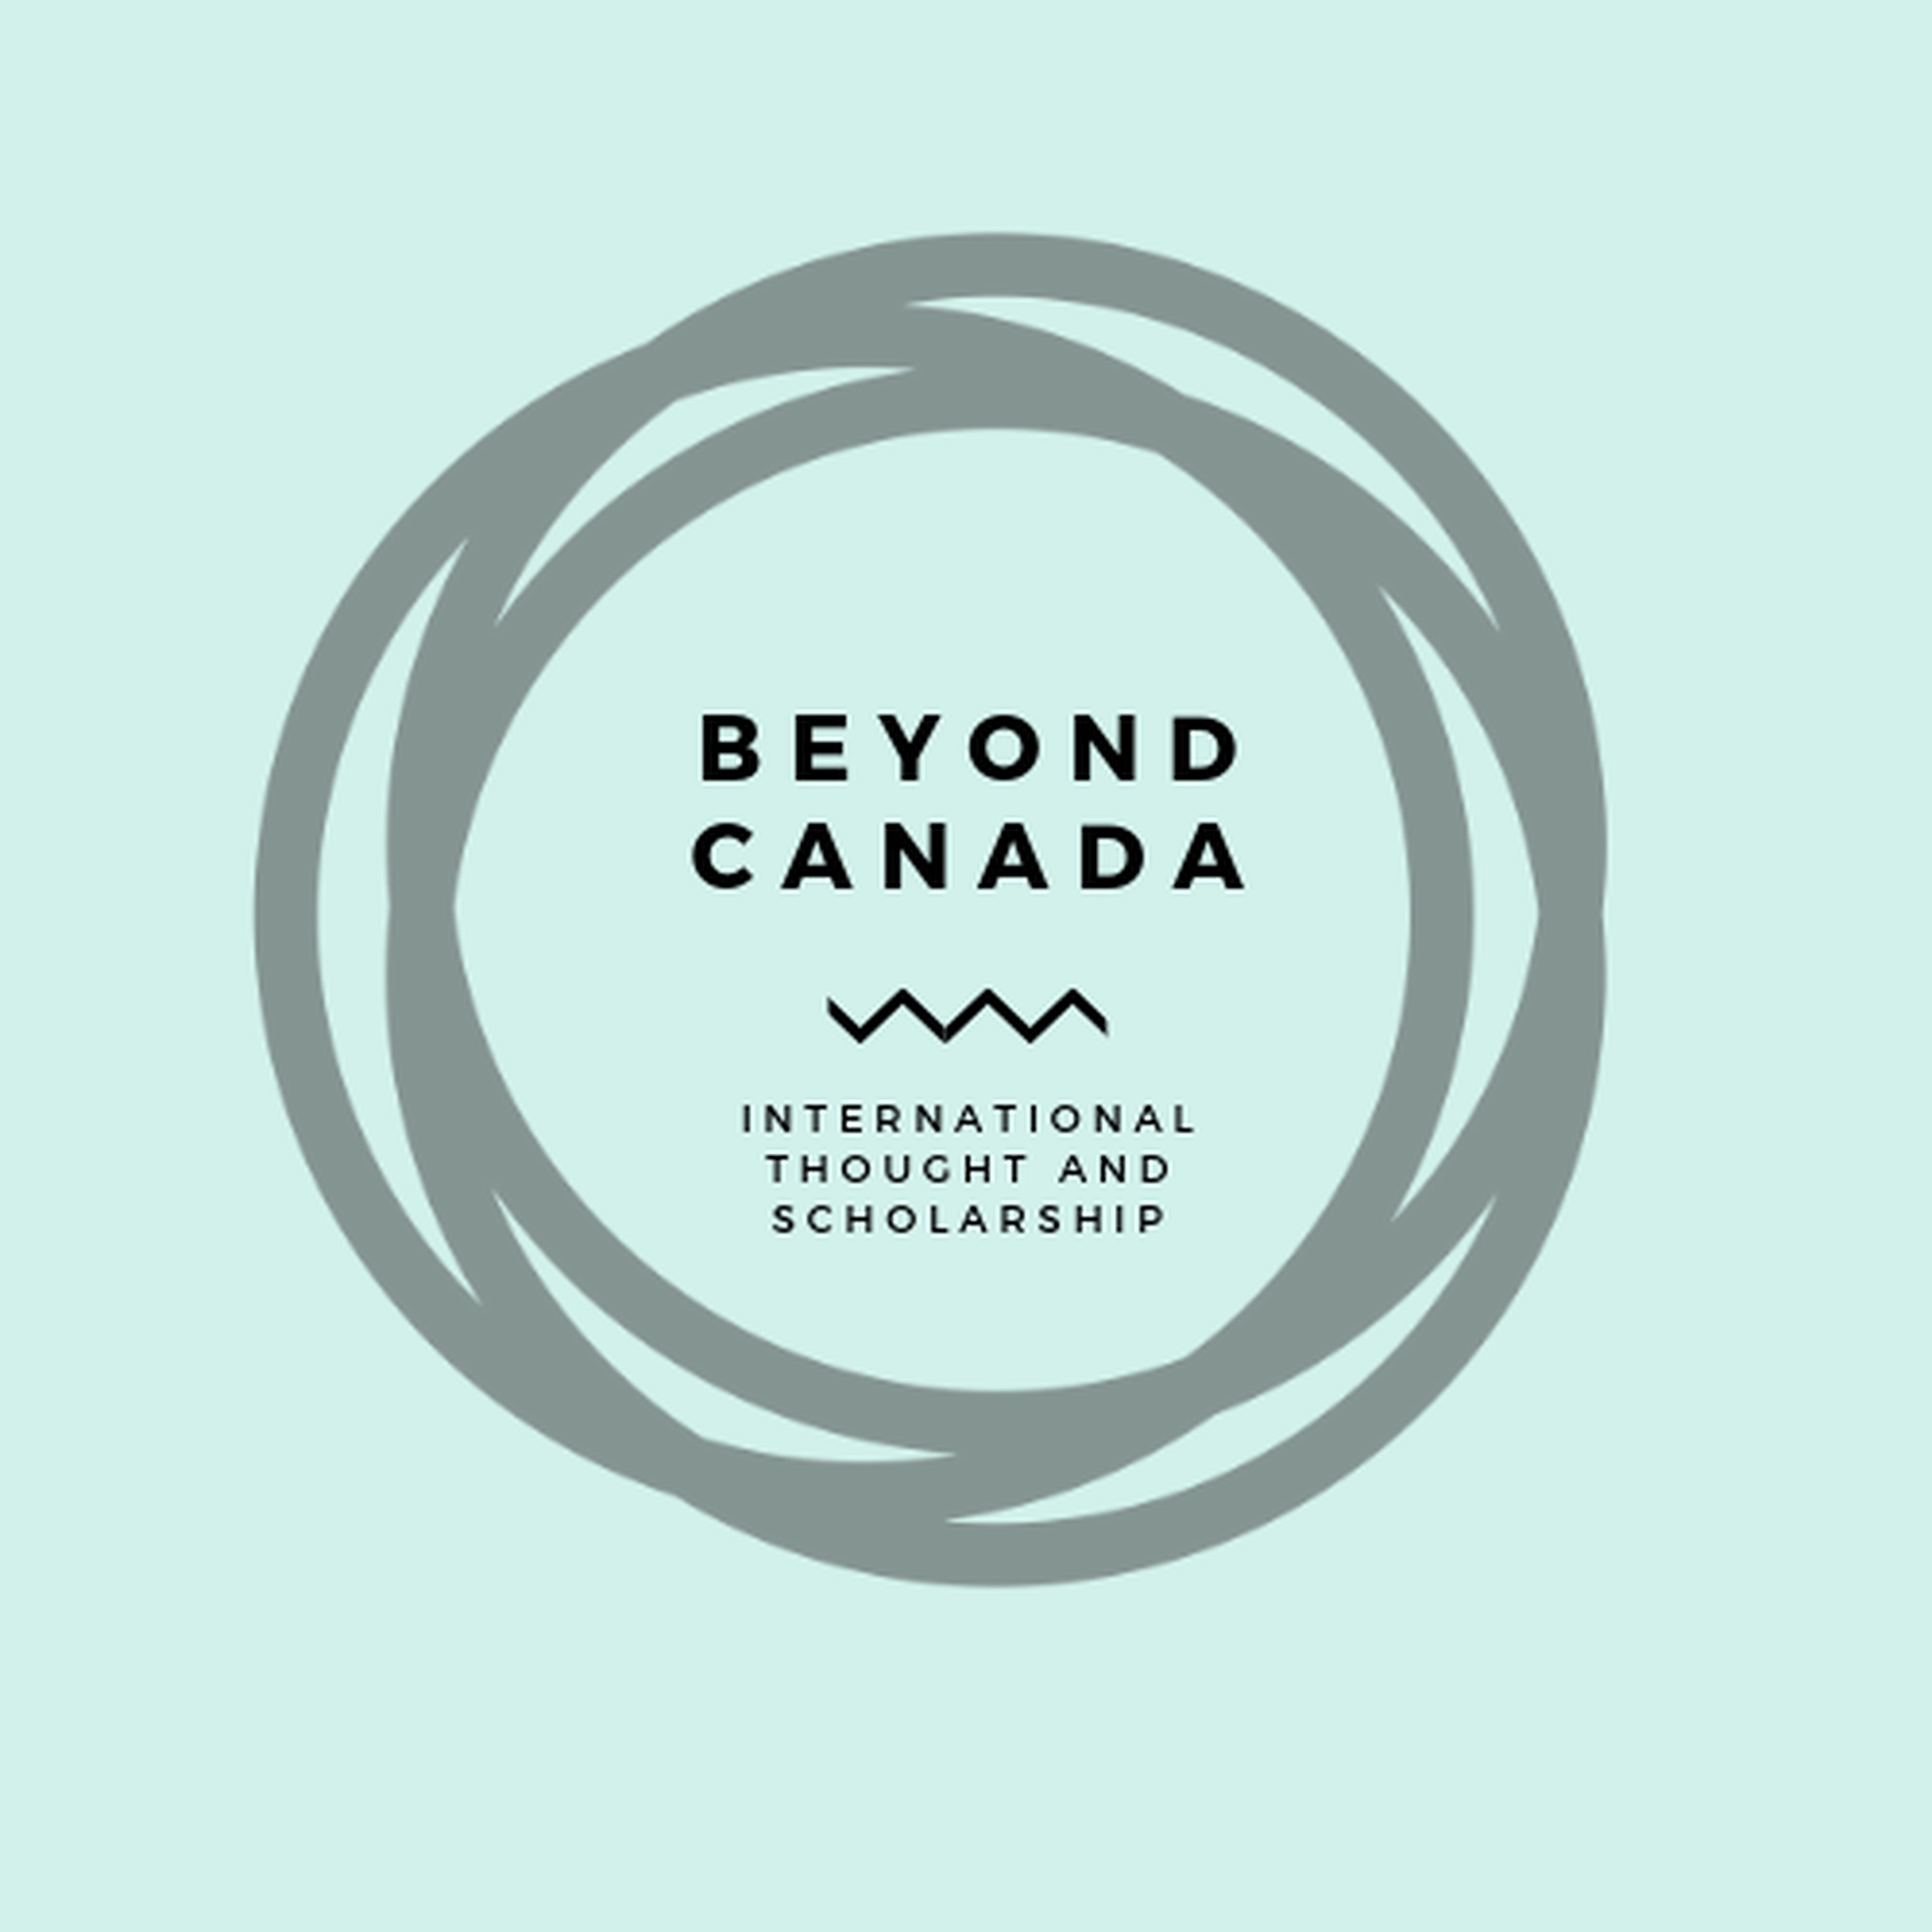 Beyond Canada: International Thought and Scholarship